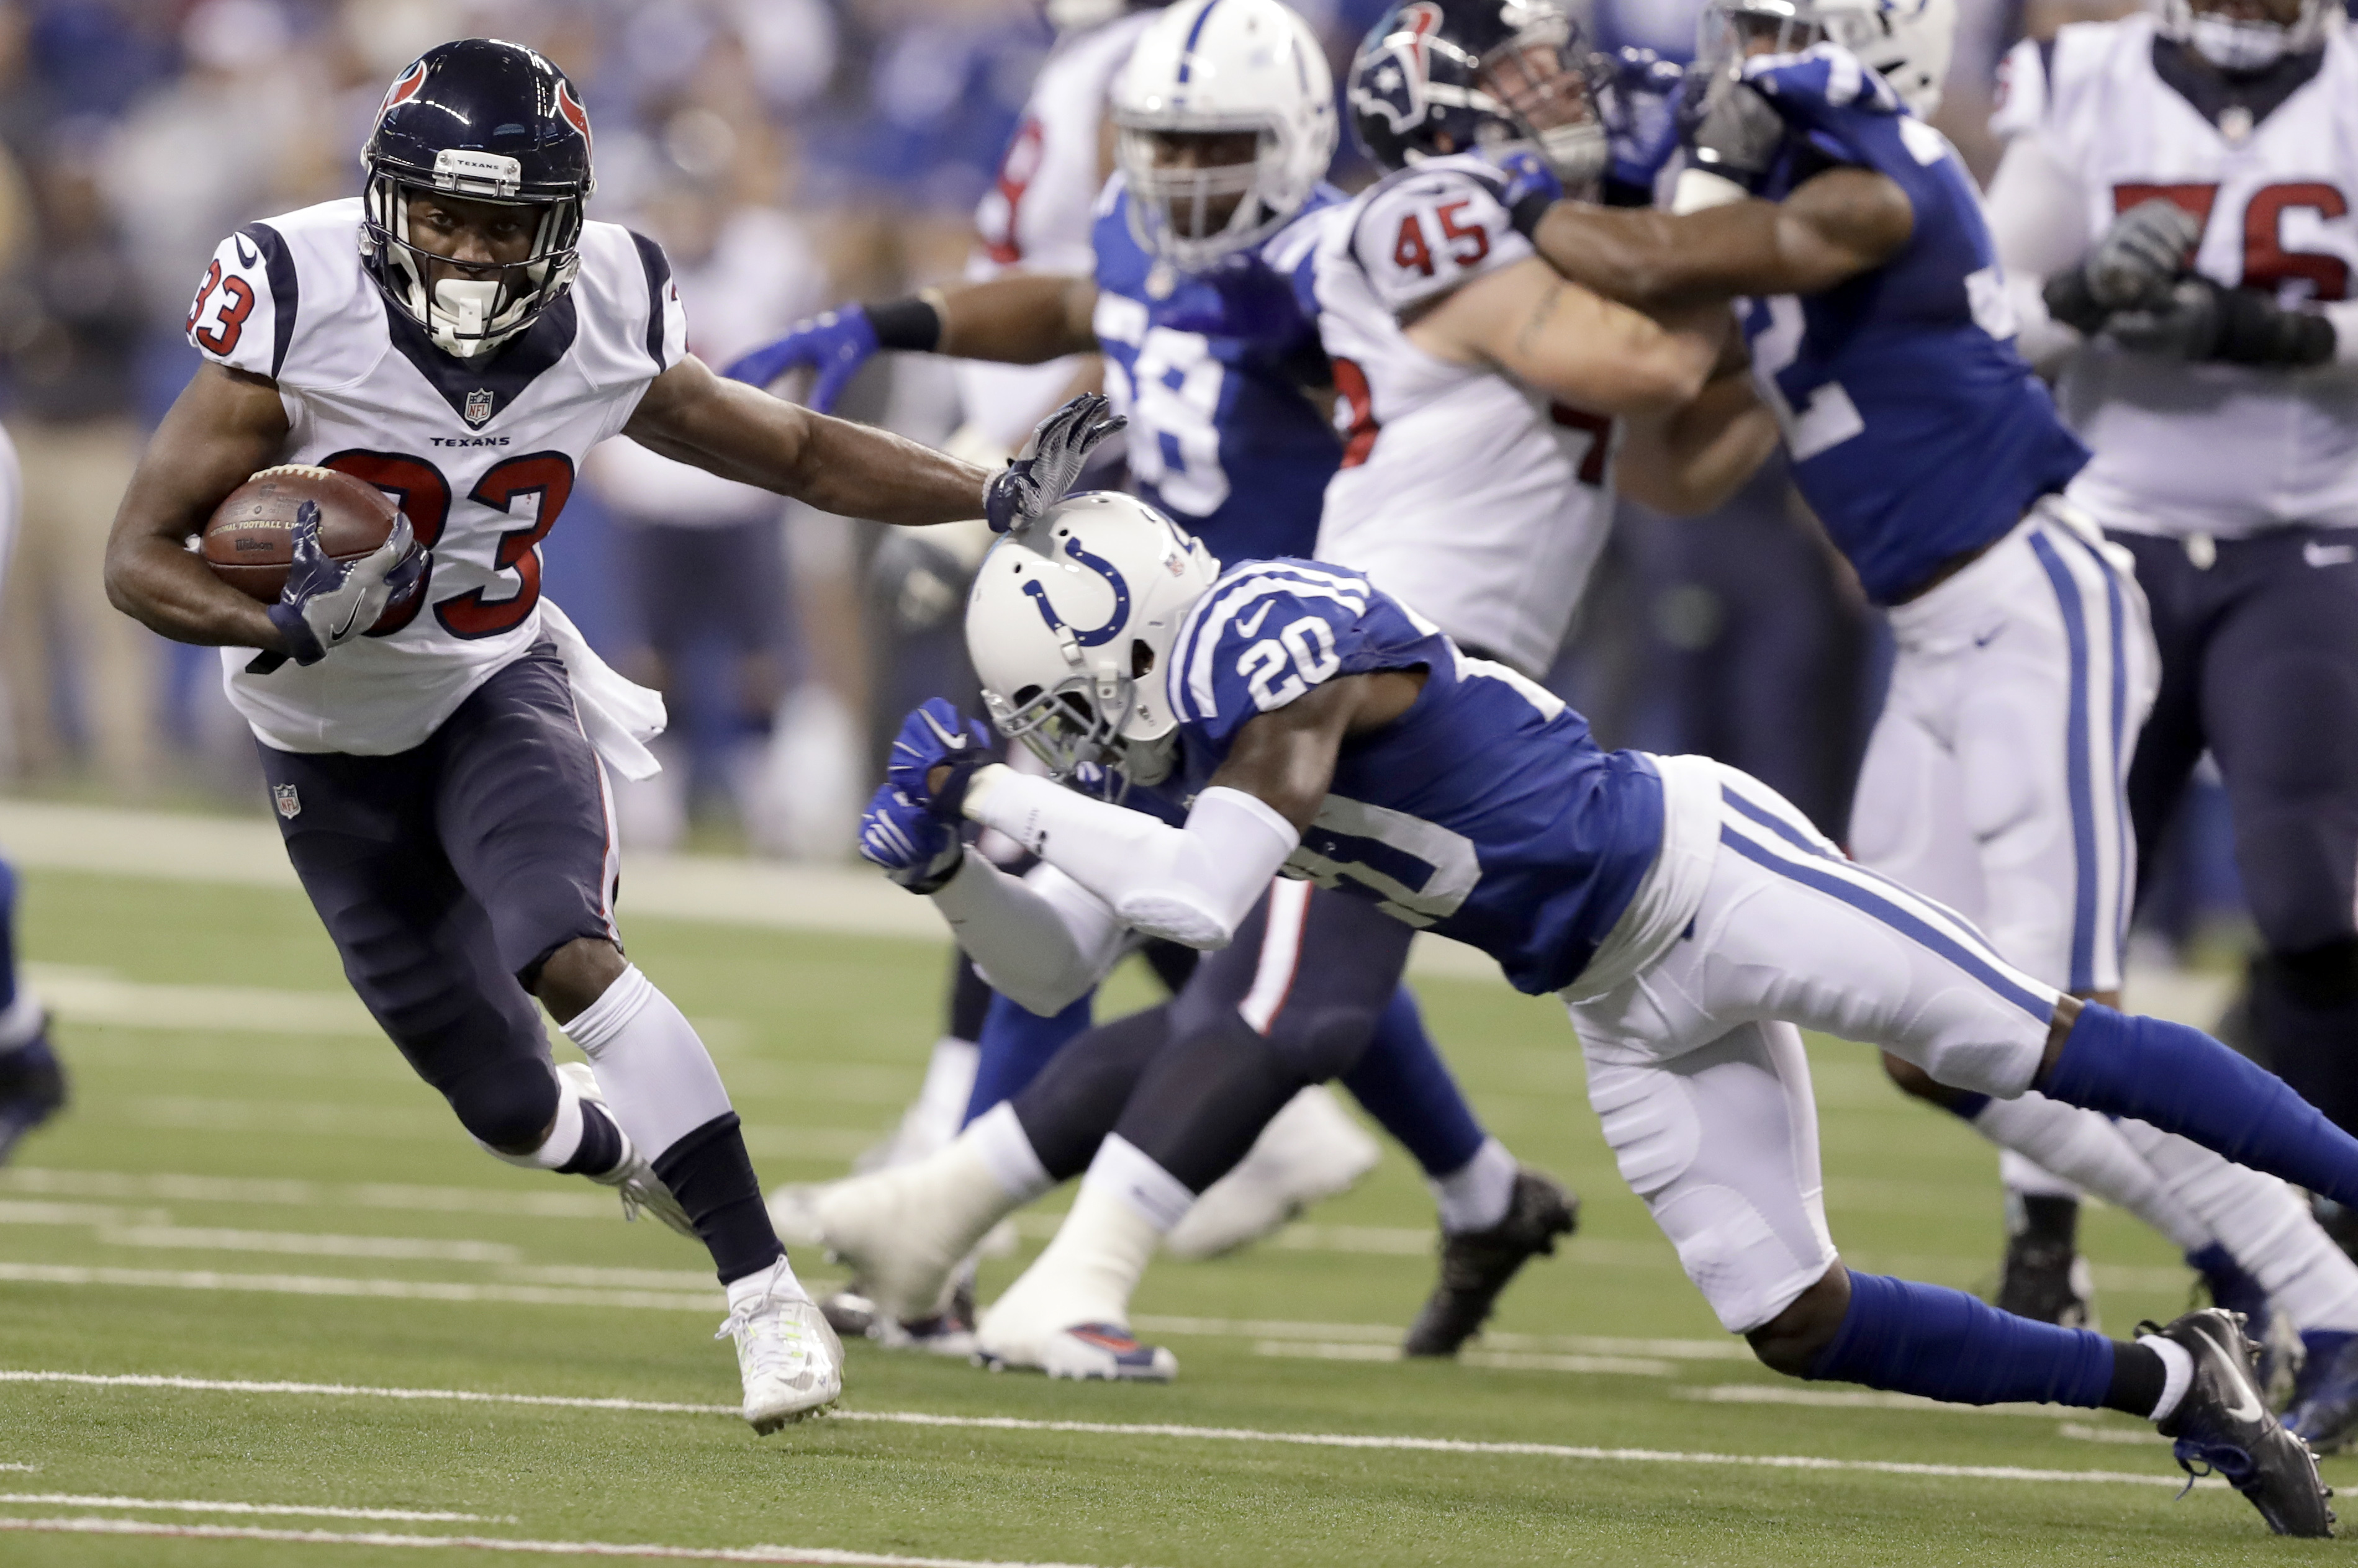 Houston Texans running back Akeem Hunt (33) runs with the ball past Indianapolis Colts cornerback Darius Butler (20) during the first half of an NFL football game Sunday, Dec. 11, 2016, in Indianapolis. (AP Photo/Darron Cummings)